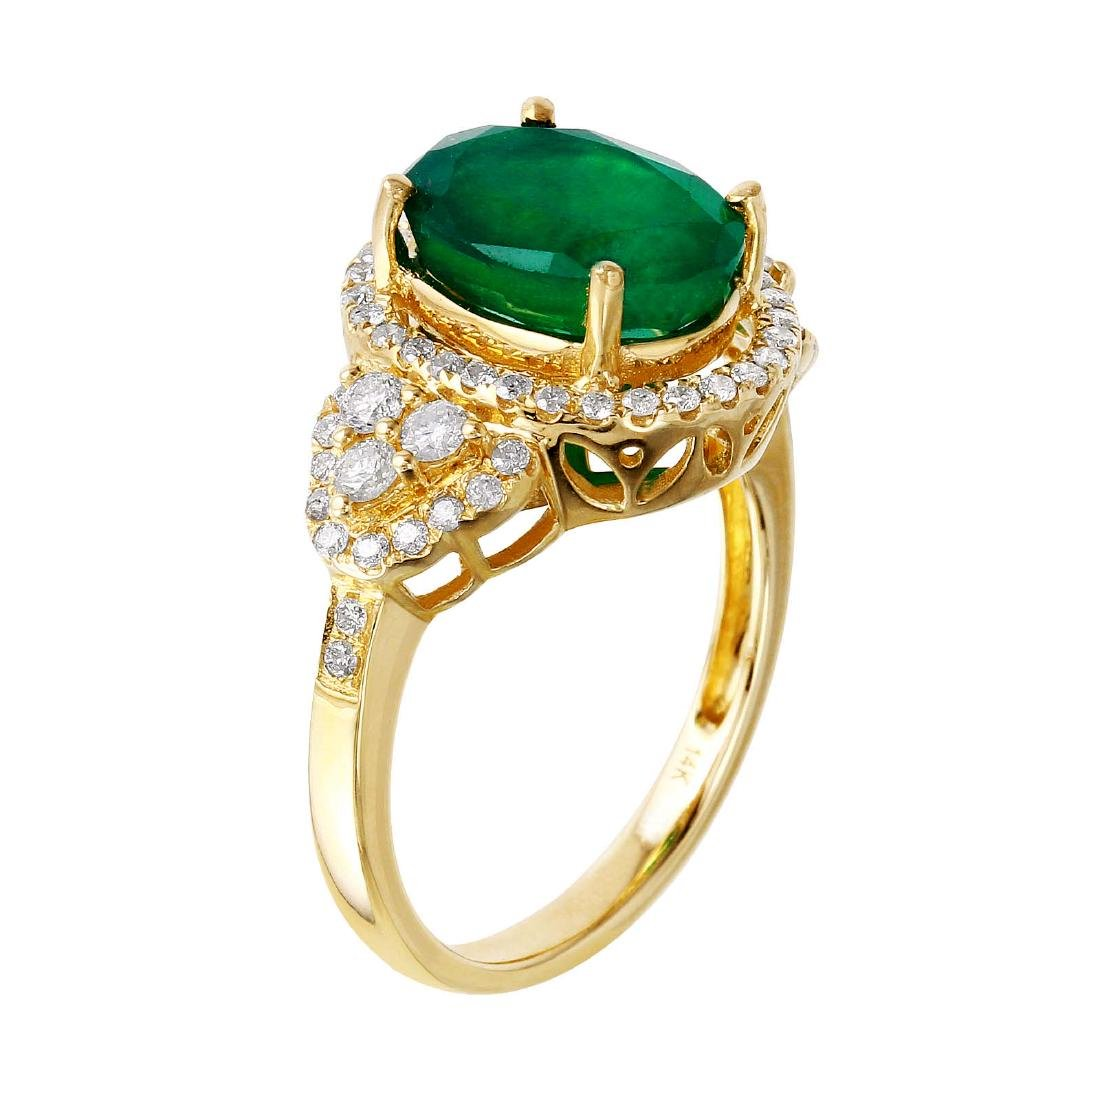 14KT Yellow Gold Emerald and Diamond Ring - 4